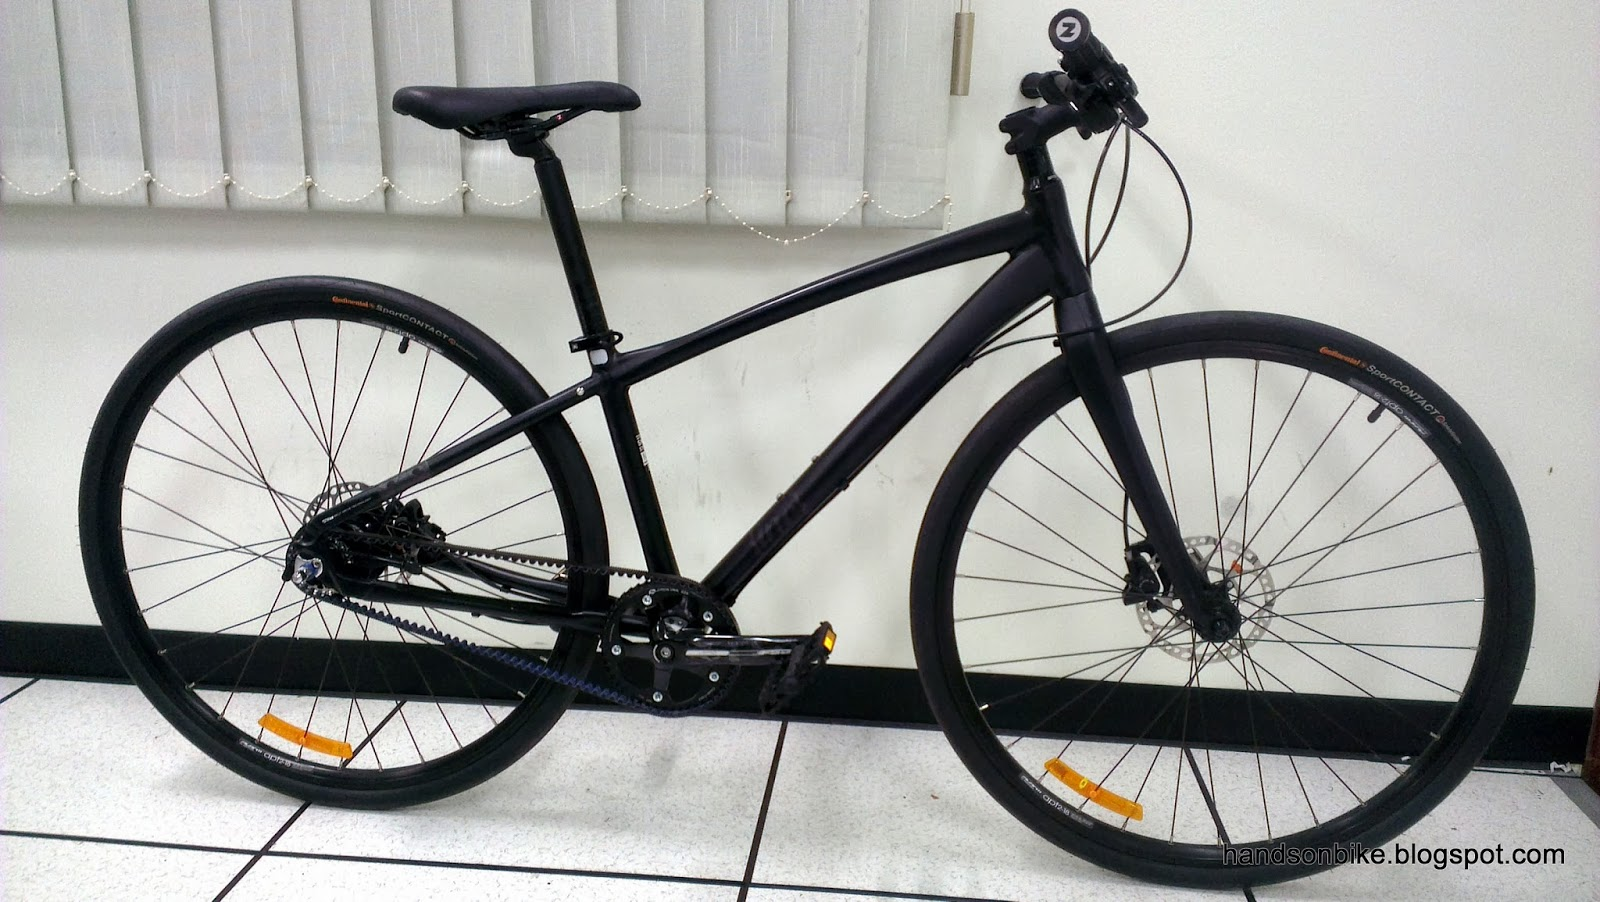 Hands On Bike: Avanti Inc 3: Alfine 11 Internal Hub + Gates Carbon ...